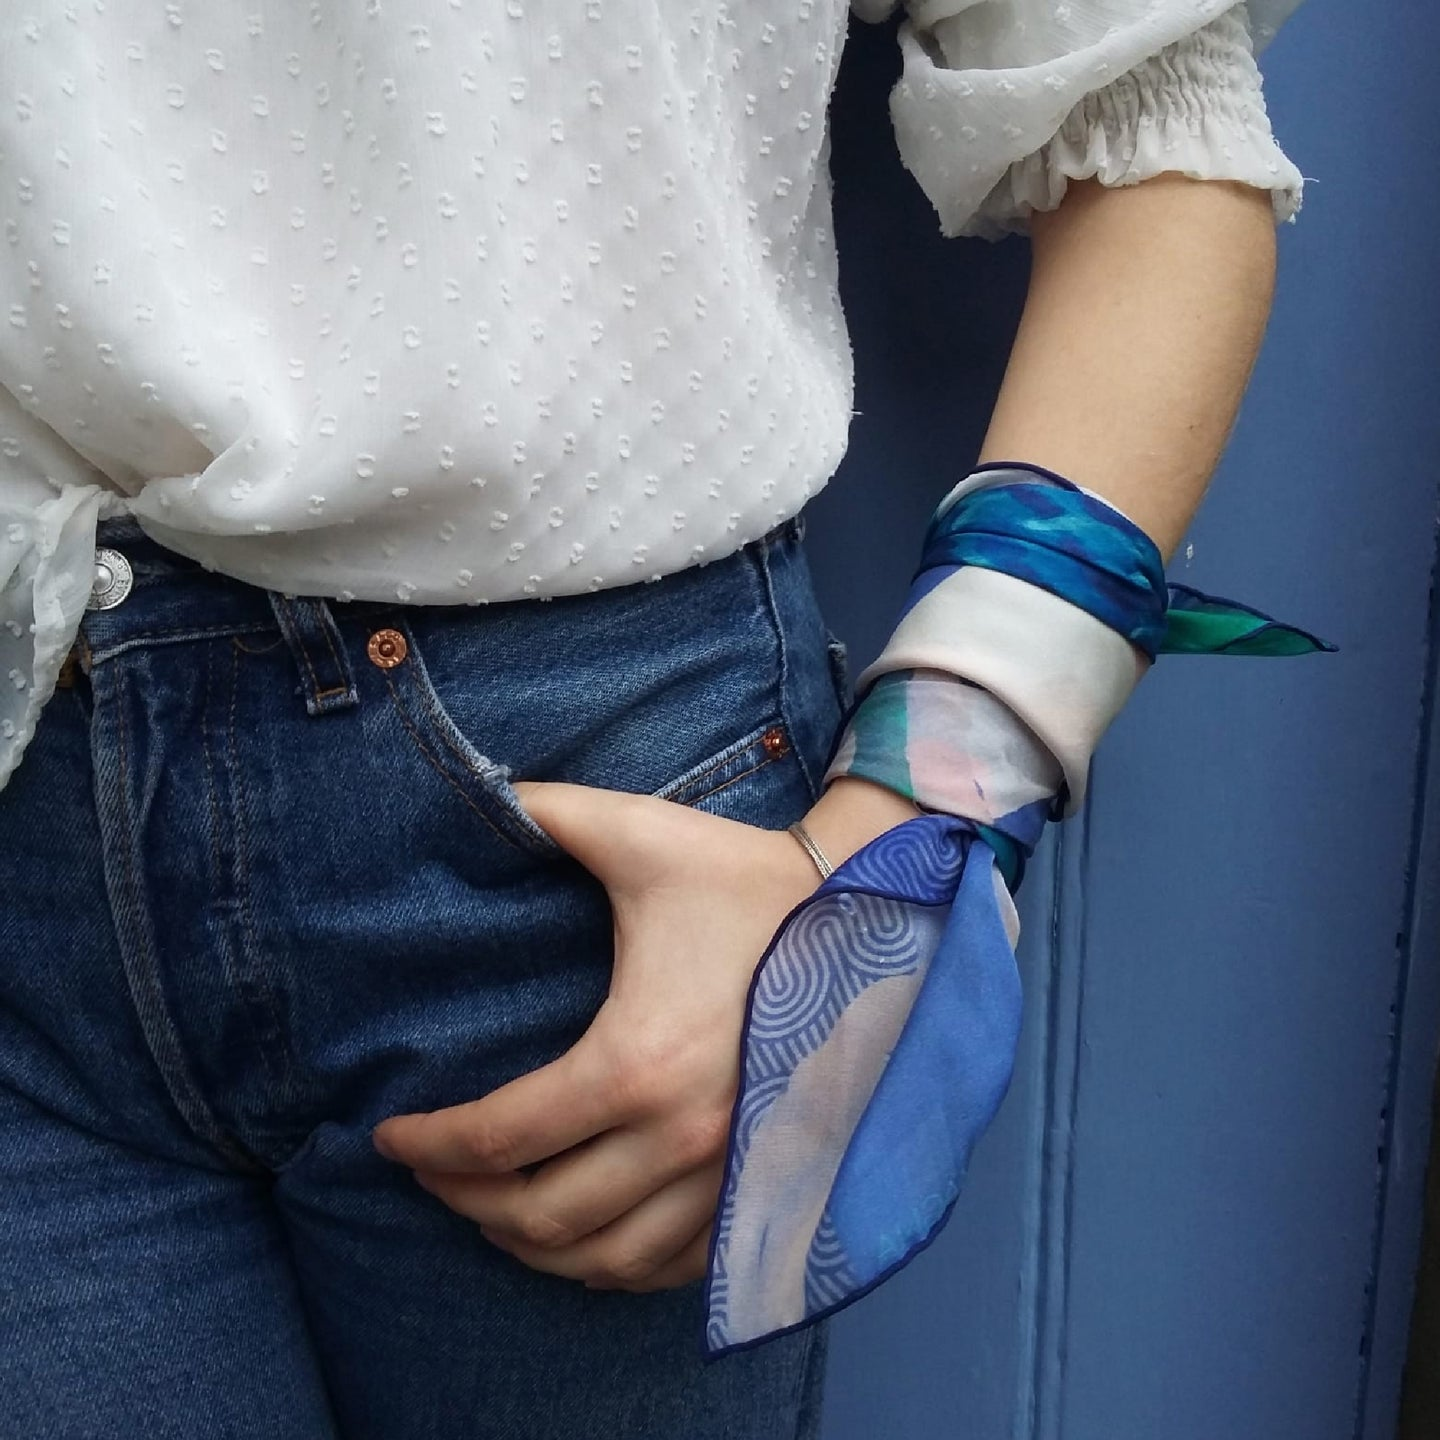 blue silk chiffon scarf tied around wrist